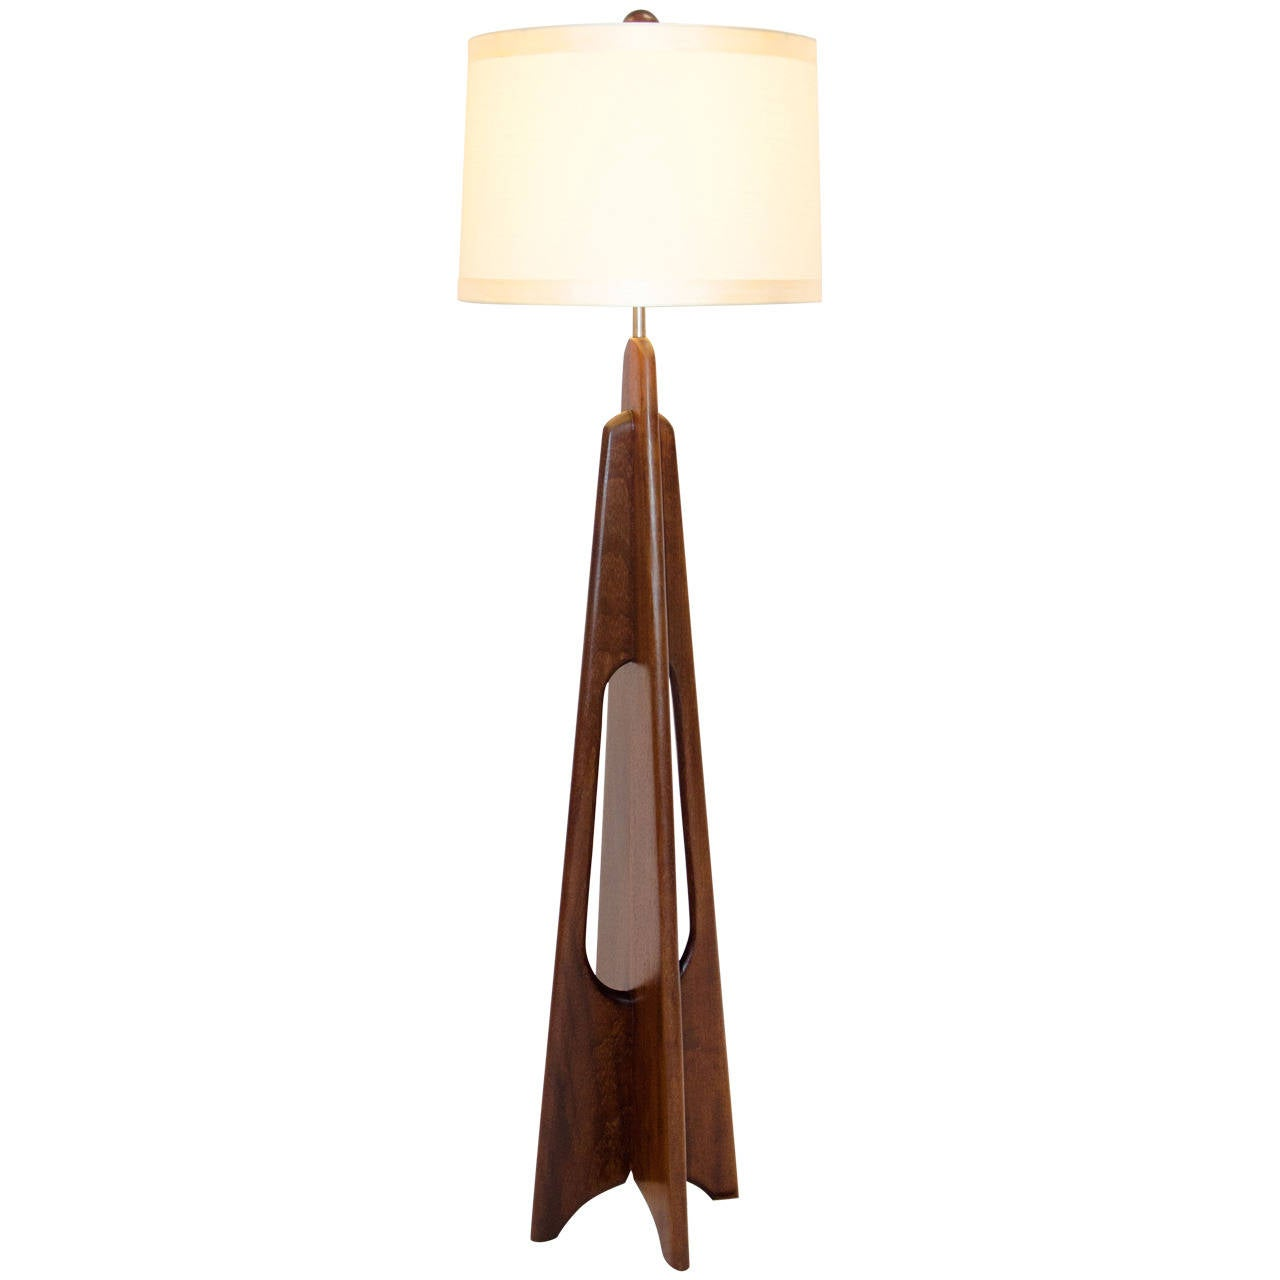 Mid Century Solid Mahogany Floor Lamp, Modeline Style At